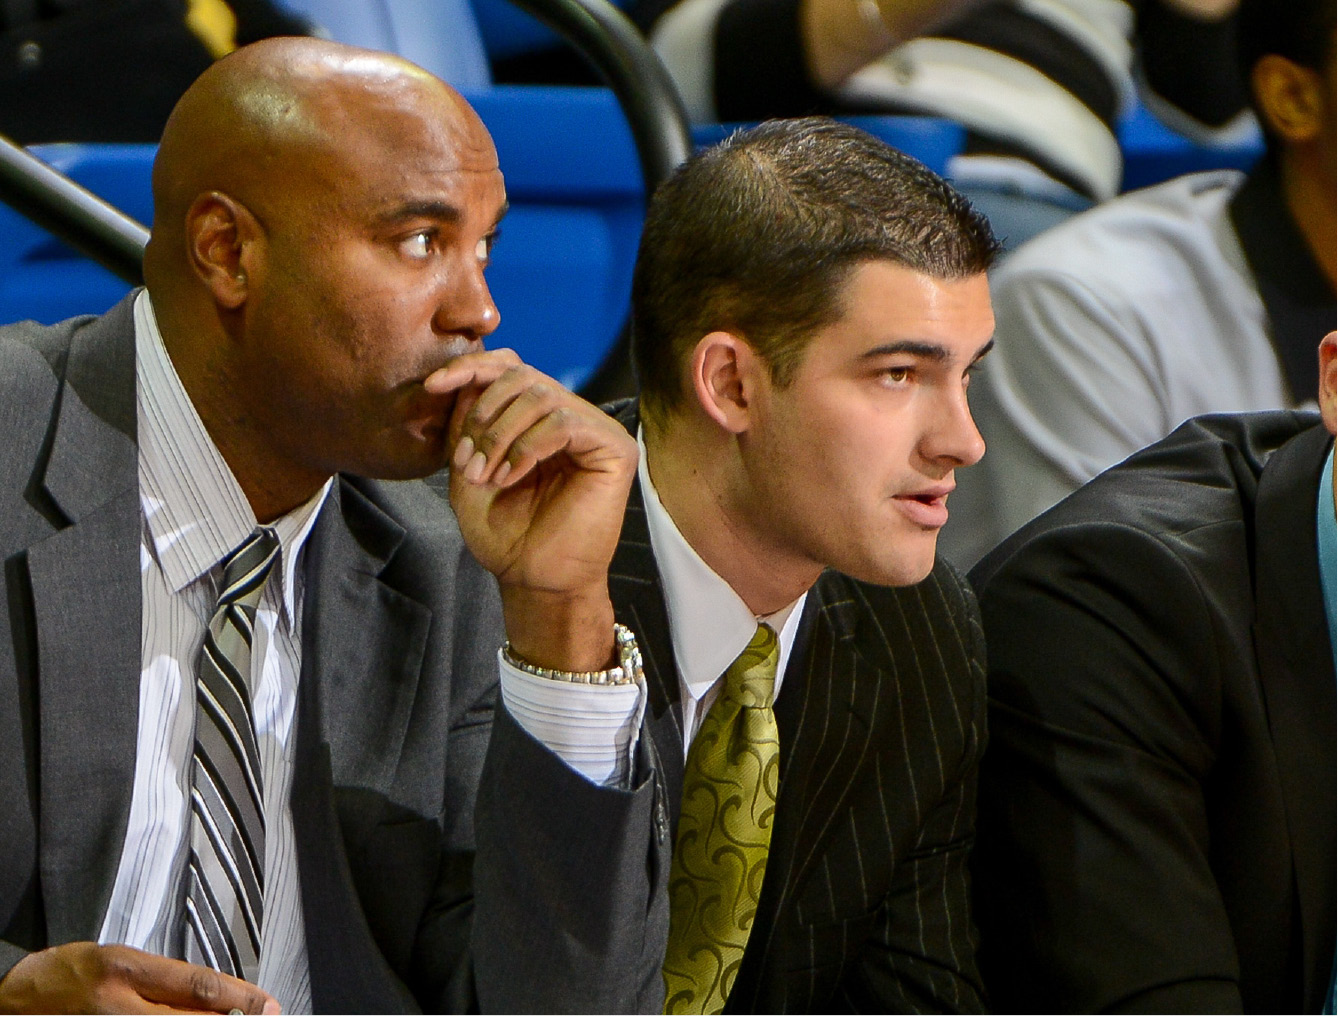 Mike Papale and Scott Burrell, shown here coaching Quinnipiac, are the new coach and head coach at Southern Connecticut State University. Papale, of Wallingford, was officially named Burrell's assistant on Tuesday. | Photo courtesy of Southern Connecticut State University.